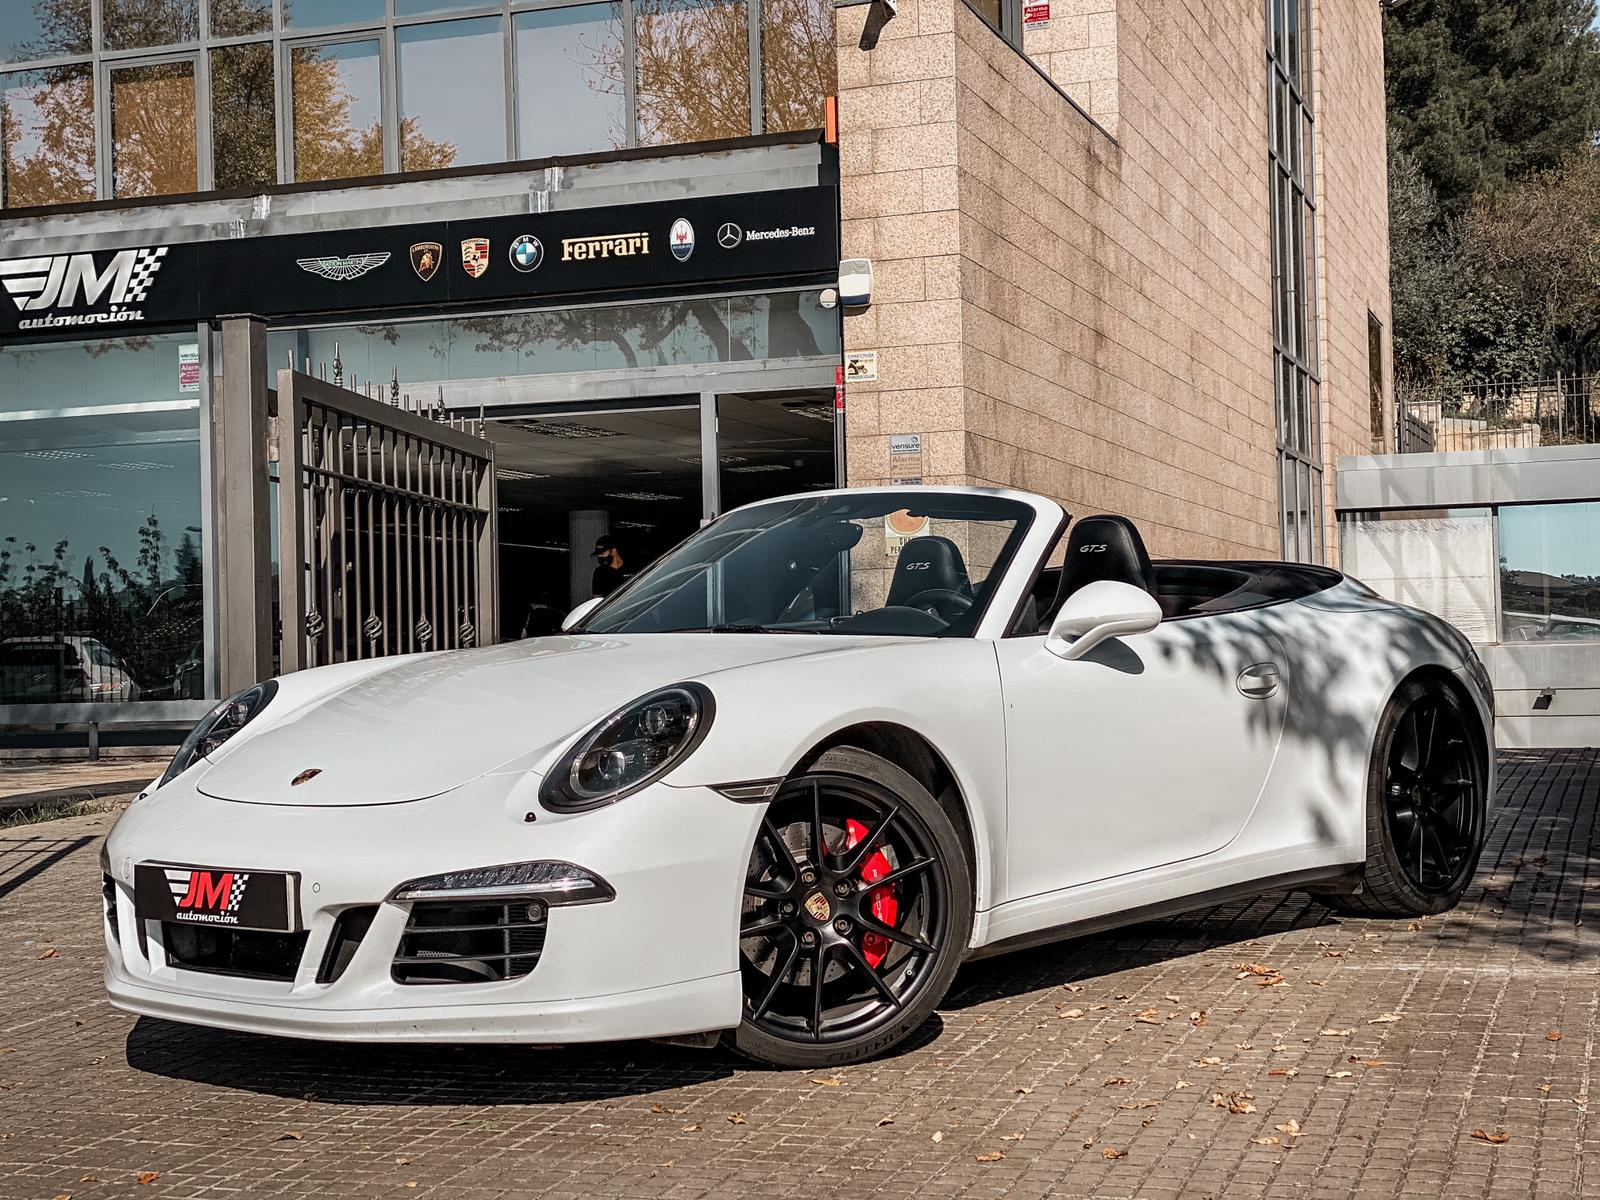 PORSCHE 911 991 CARRERA 4 GTS CABRIO -IVA DEDUCIBLE-